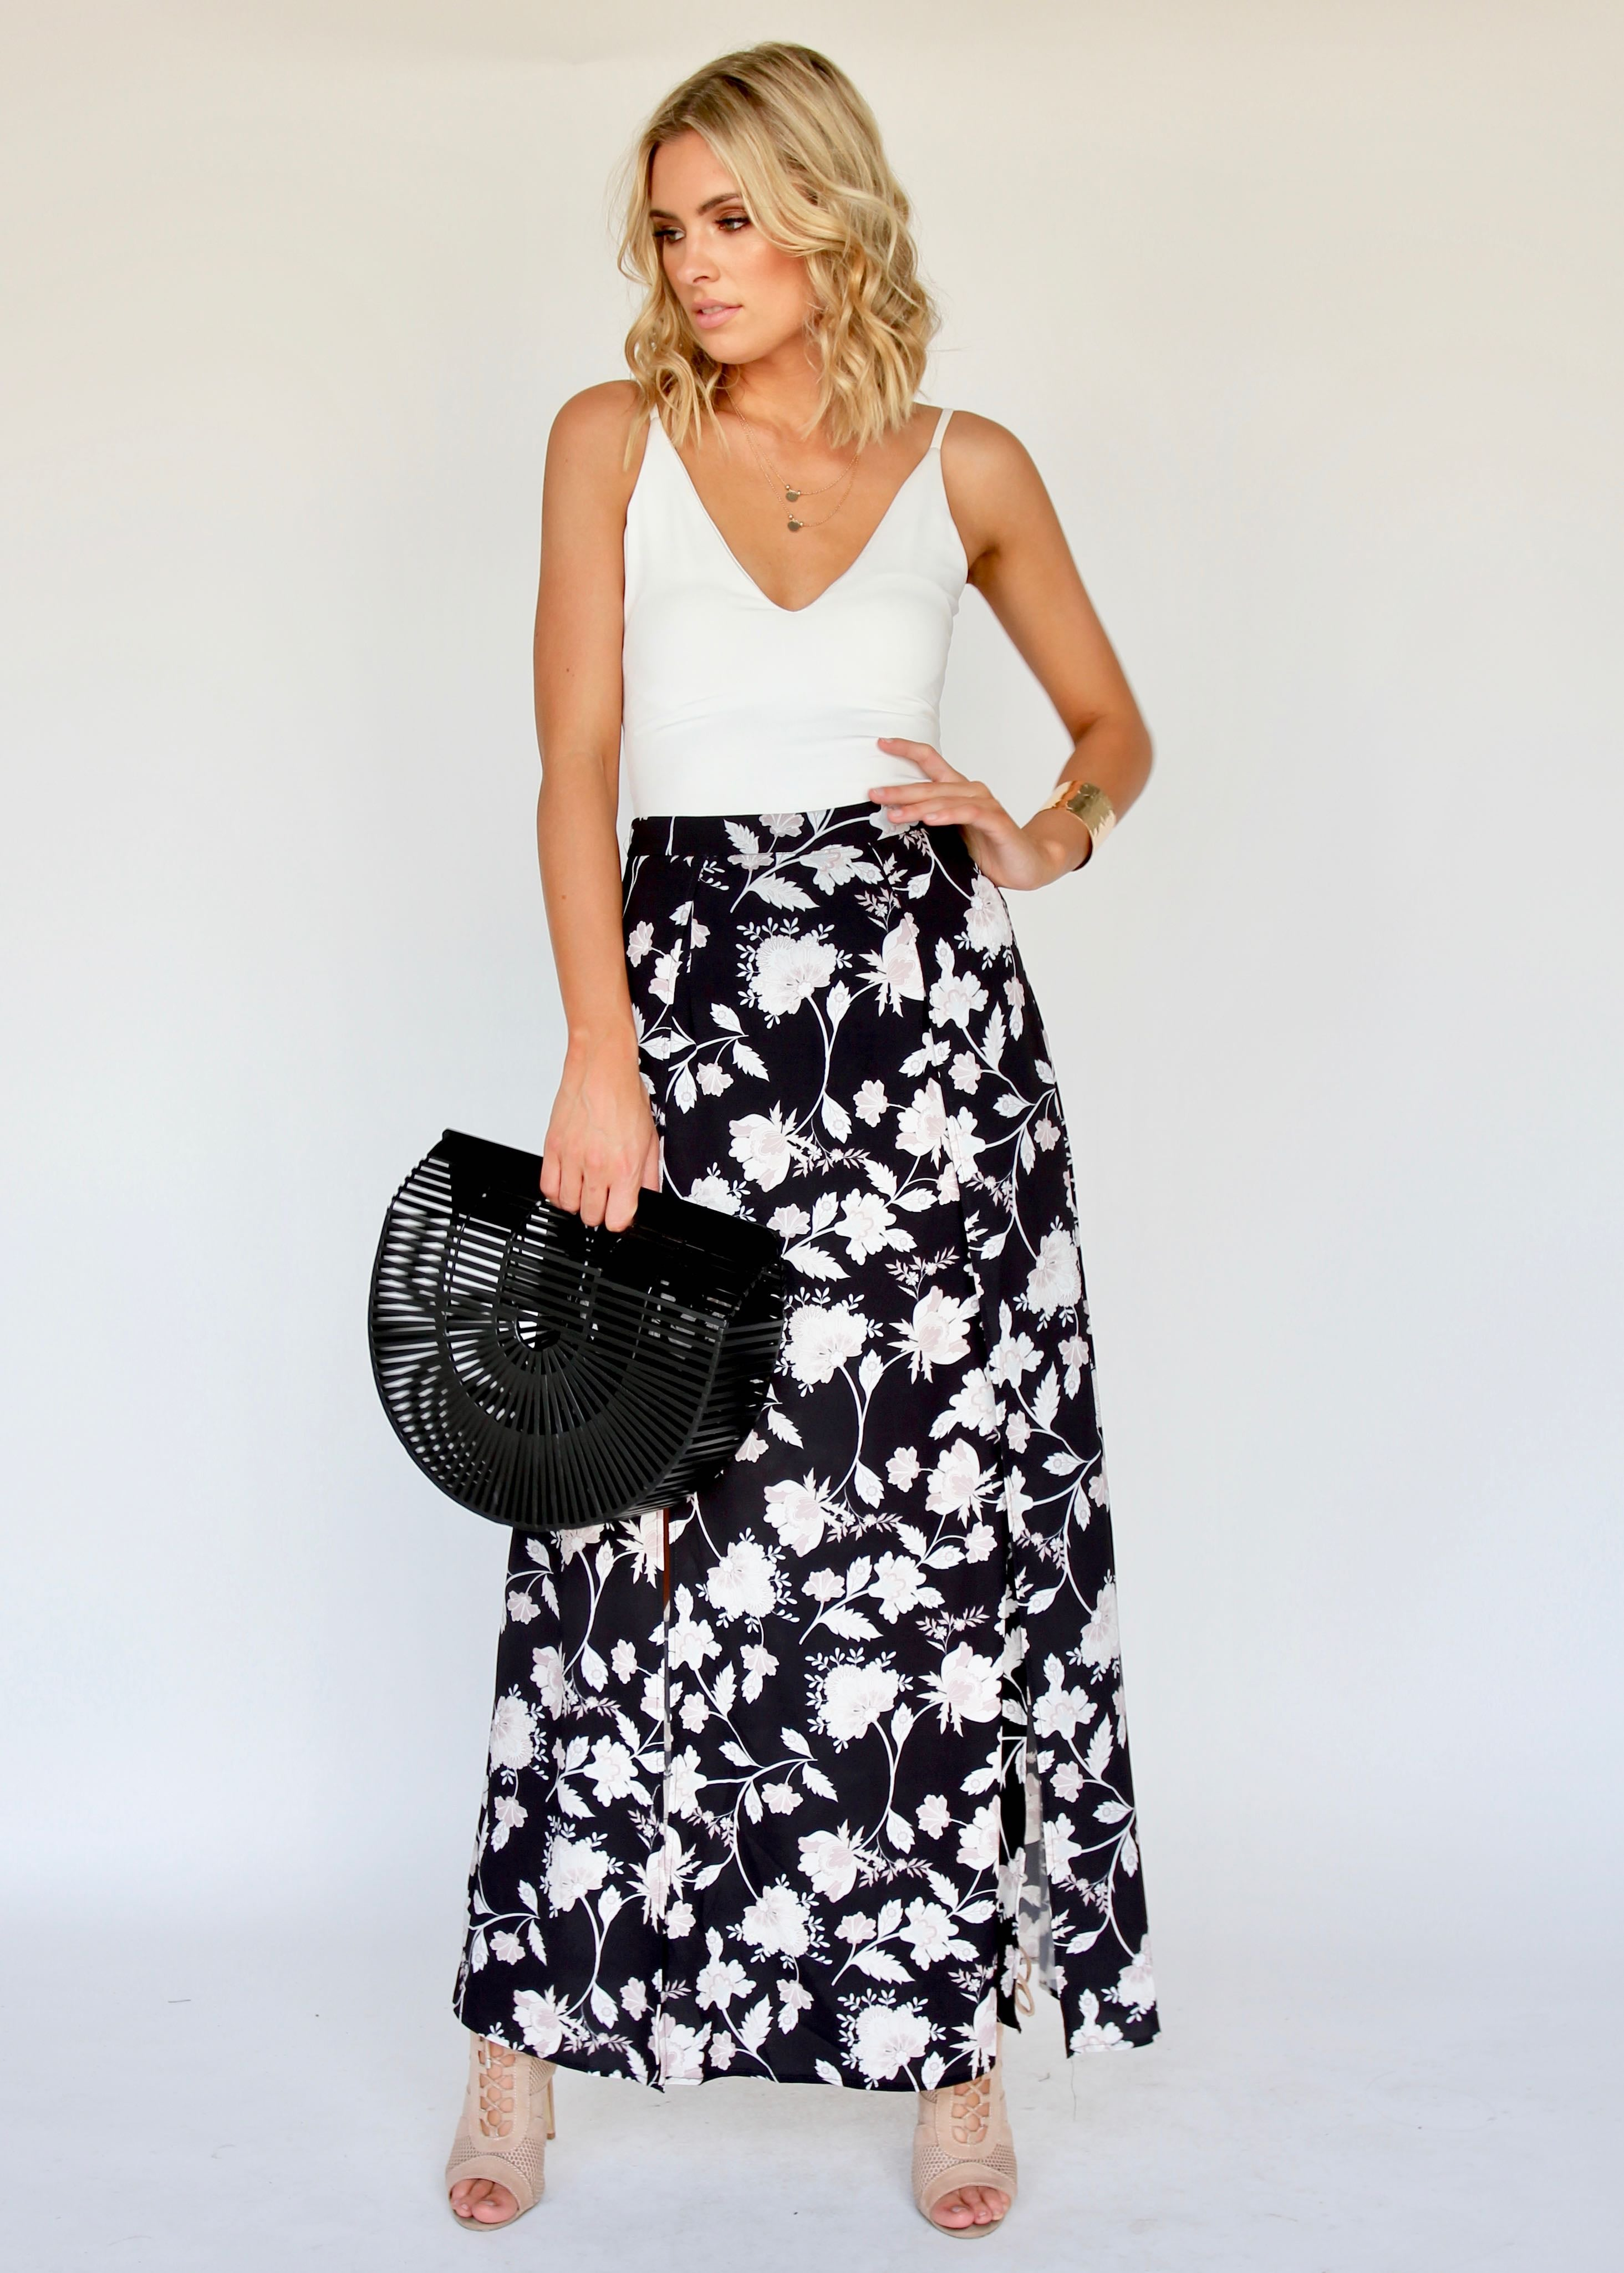 For You And I Skirt - Gypsy Black